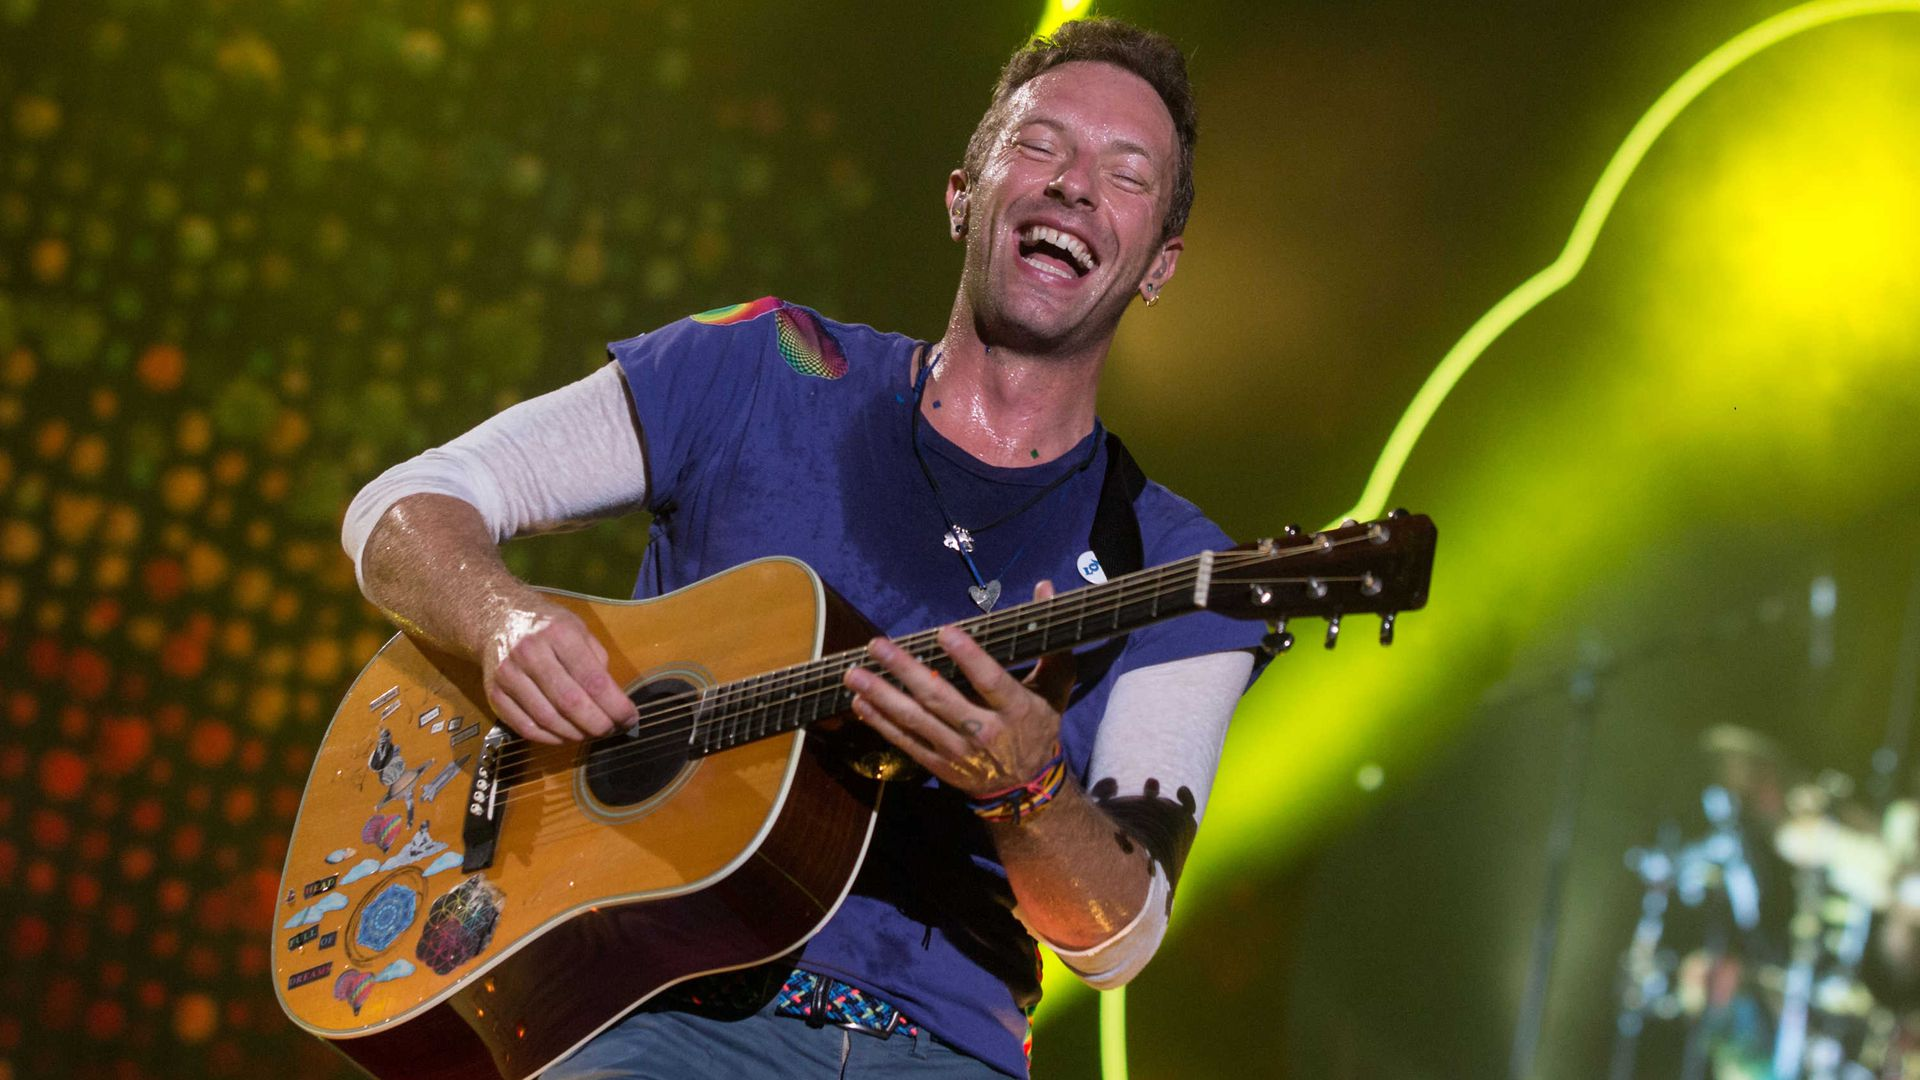 Chris Martin of Coldplay performs in Argentina in 2017